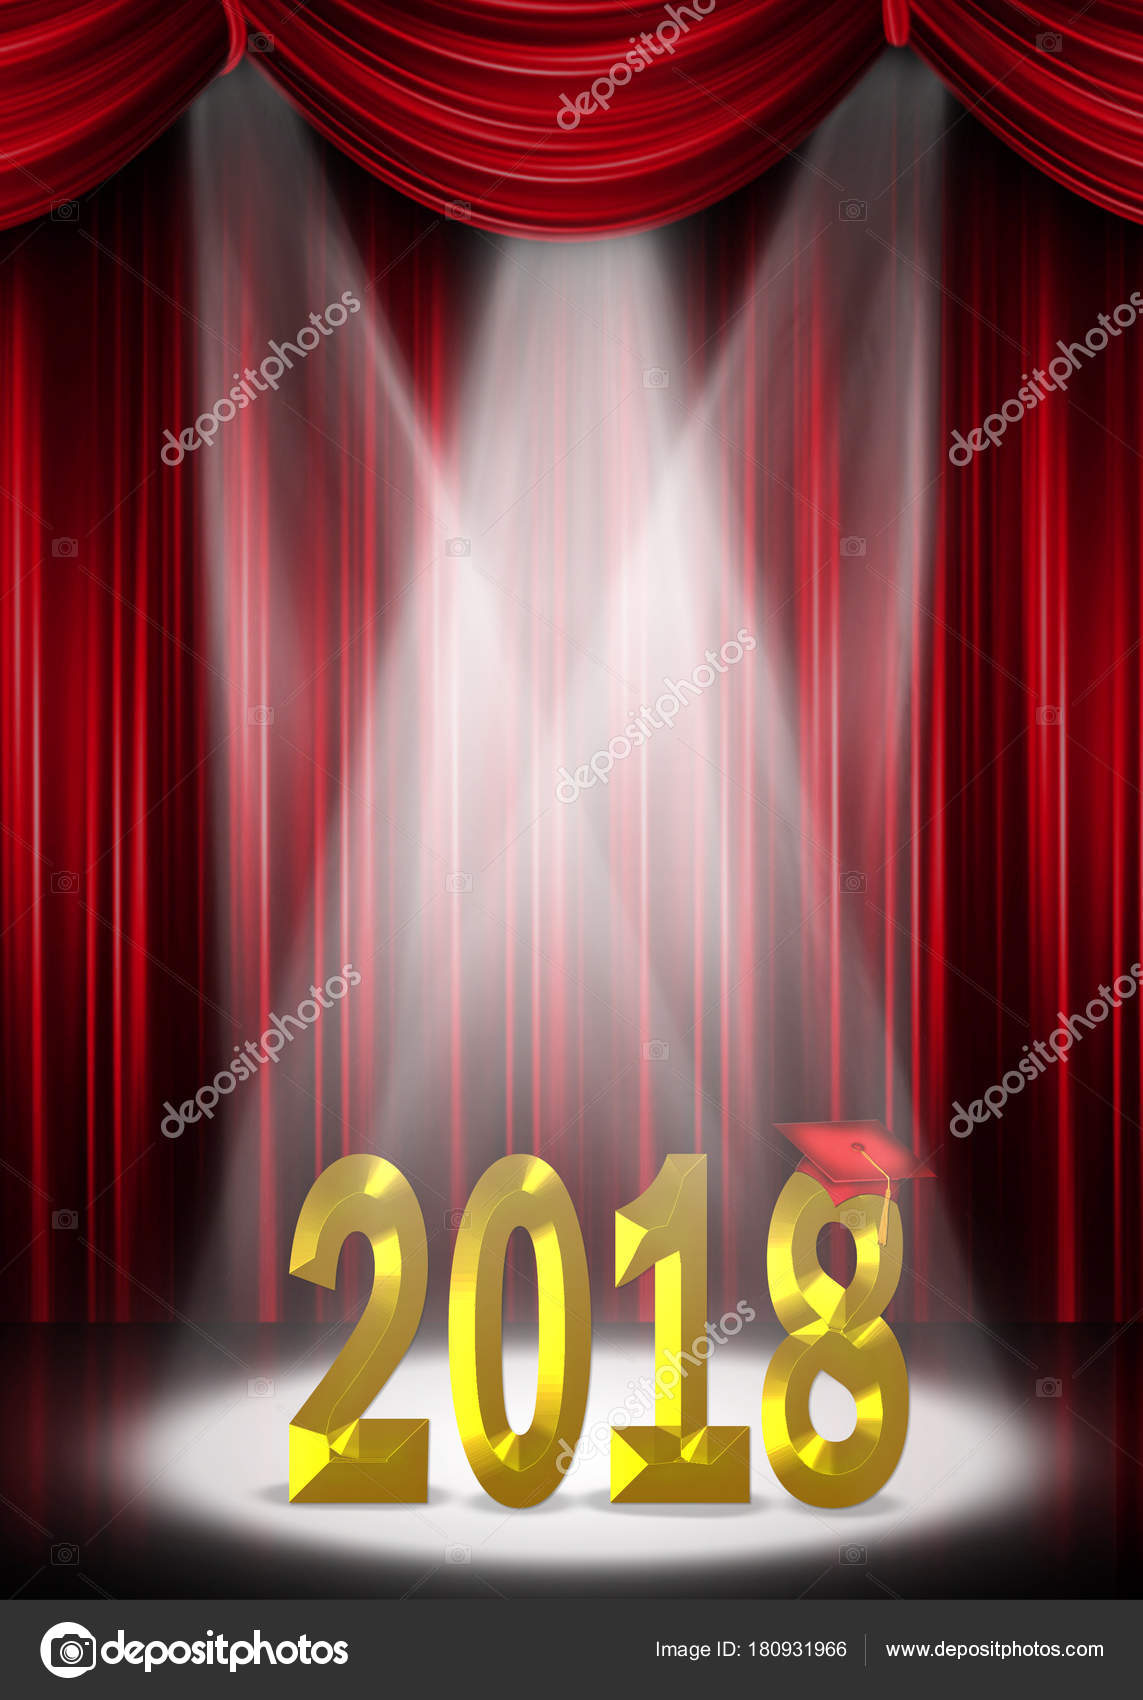 Red Curtain Backdrop 2018 Gold Text Spotlight Stage Graduation Stock Photo